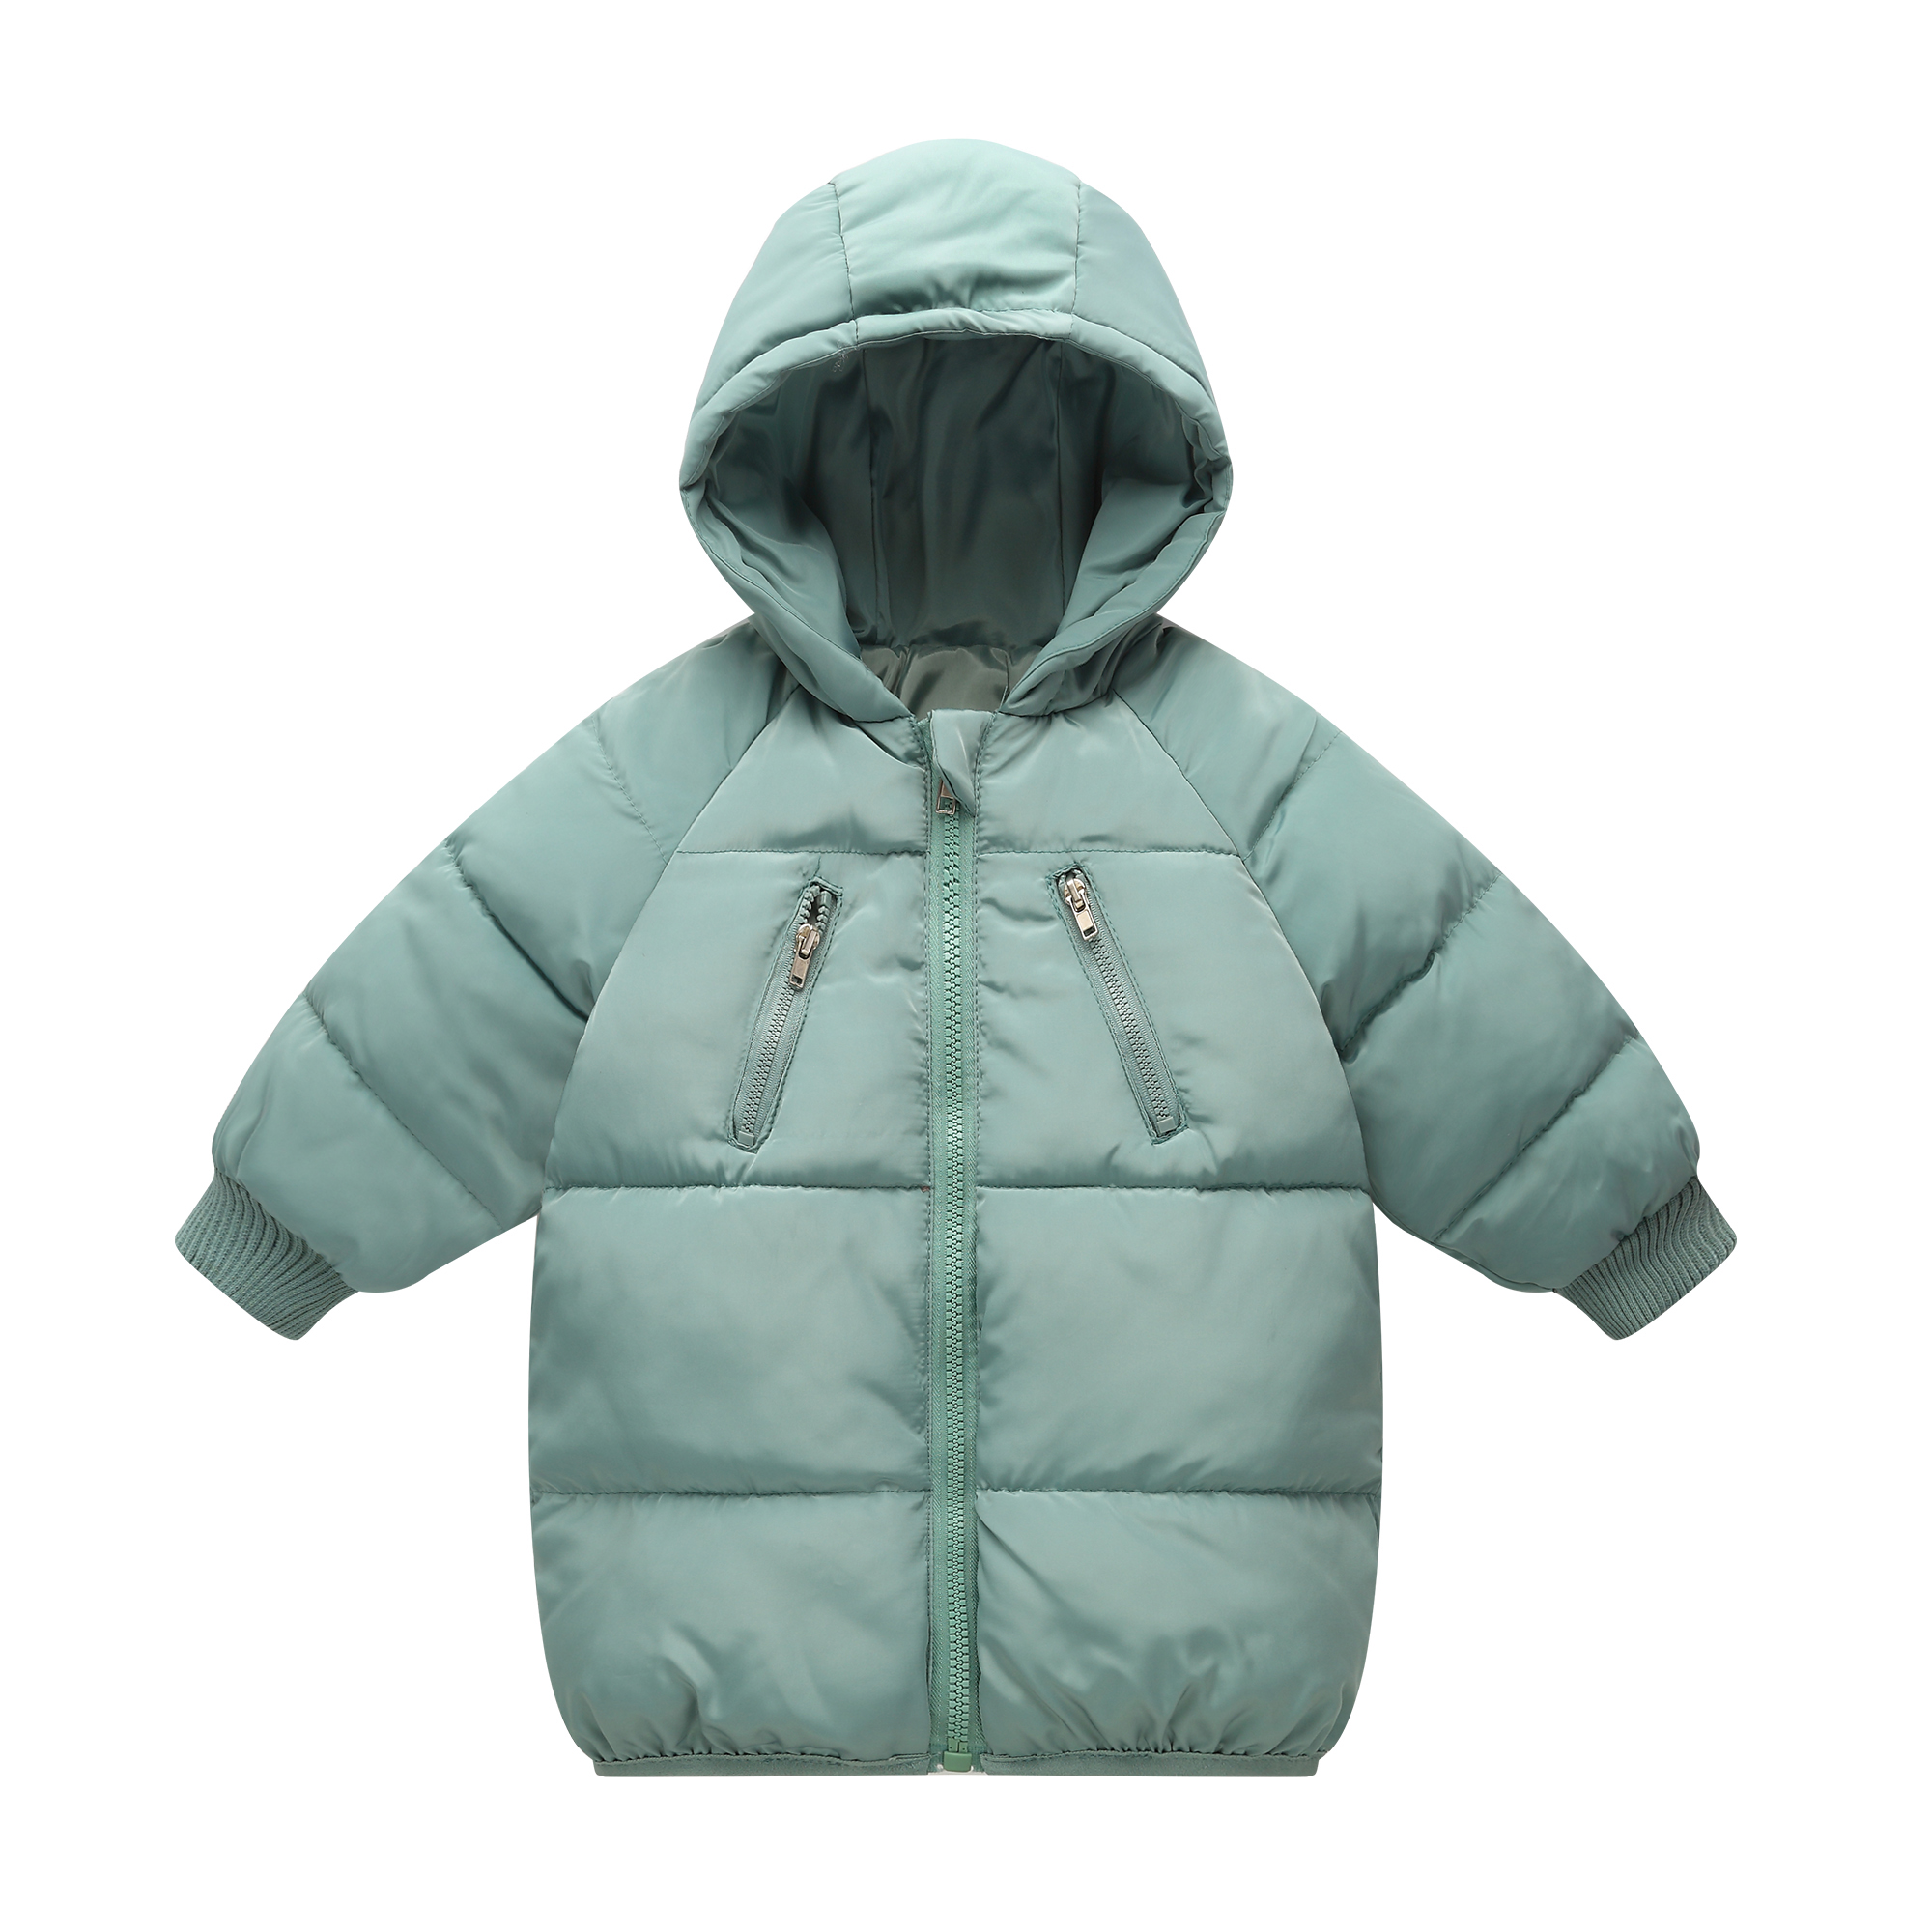 купить New Boys Jackets Parka Baby Outerwear Childen Winter Jackets for Boys Down Jackets Girls Coats Warm Kids Baby Thick Cotton Down по цене 851.88 рублей